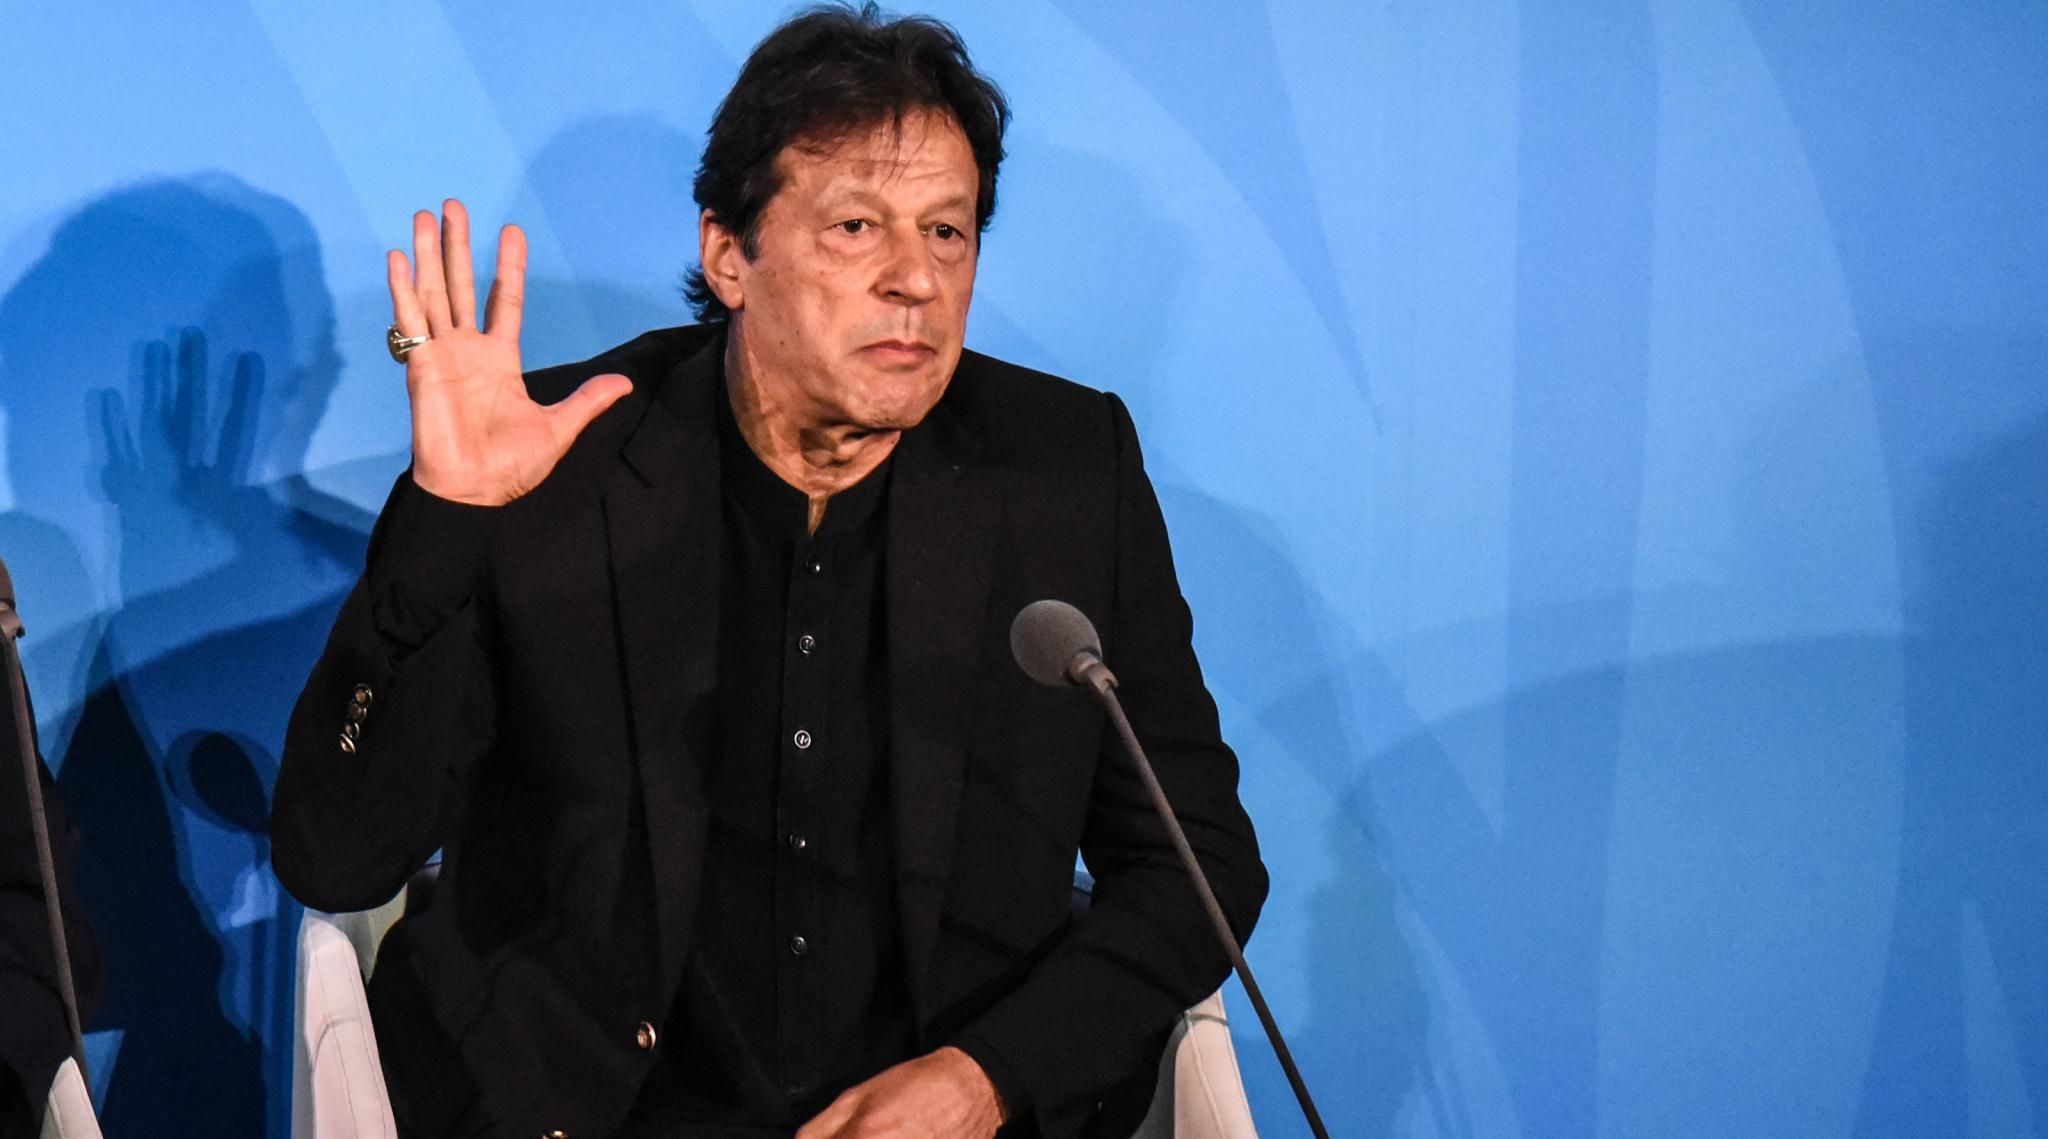 Pakistan PM Imran Khan Urges Provinces to 'Reassess' Complete Lockdowns Amid COVID-19 Pandemic